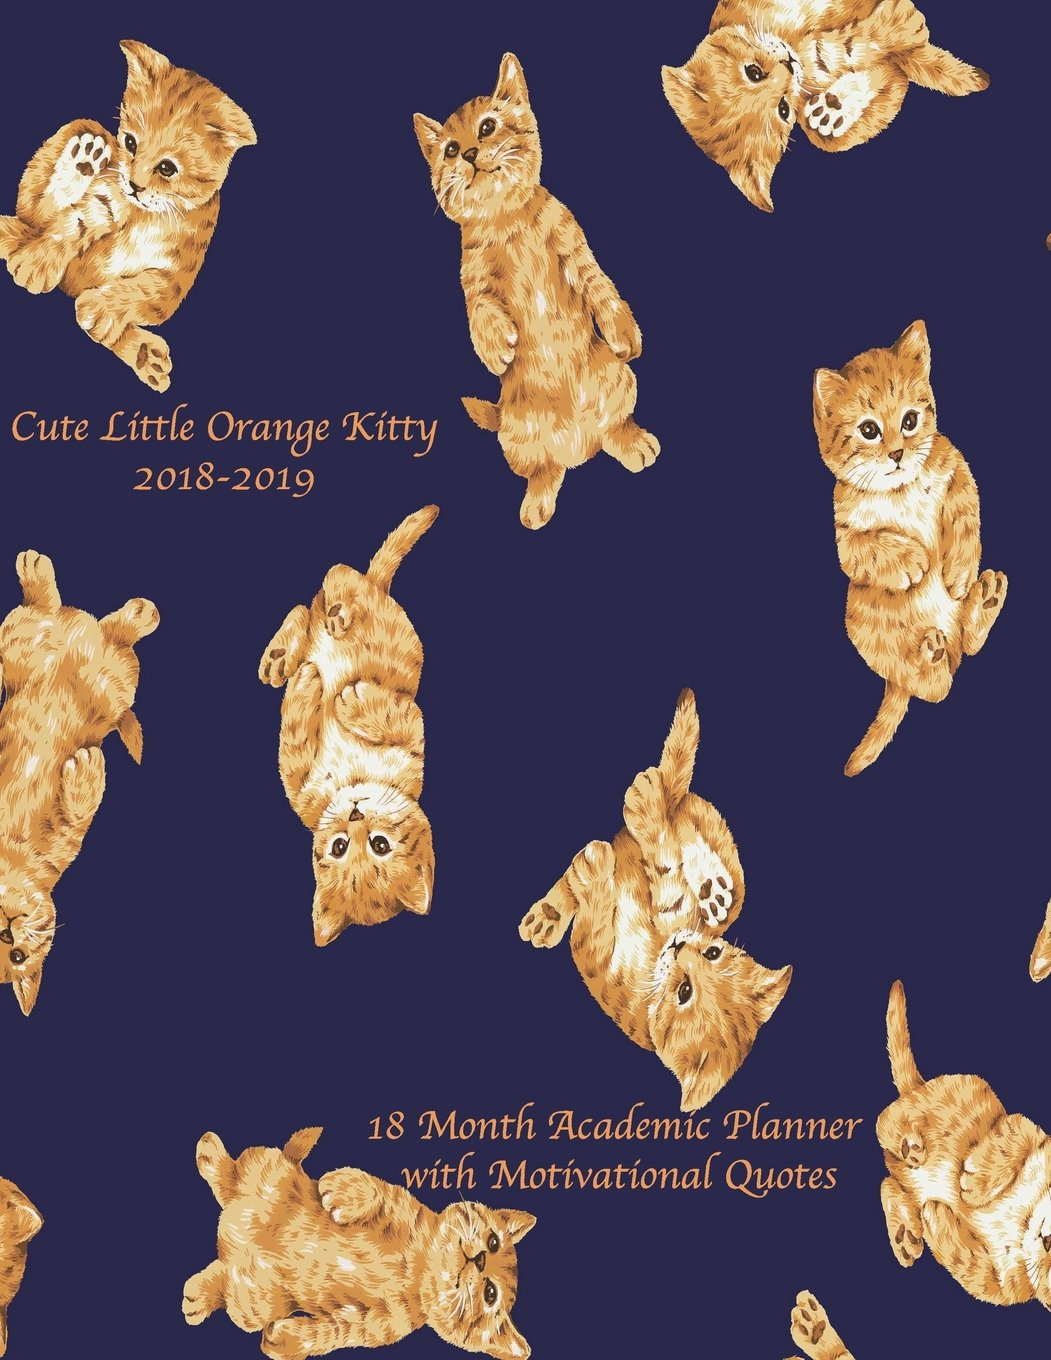 Download Cute Little Orange Kitty 2018-2019 18 Month Academic Planner: July 2018 To December 2019 Weekly and Monthly Large 8.5x11 Organizer with Motivational ... Motivational Quotes Planners) (Volume 35) ebook